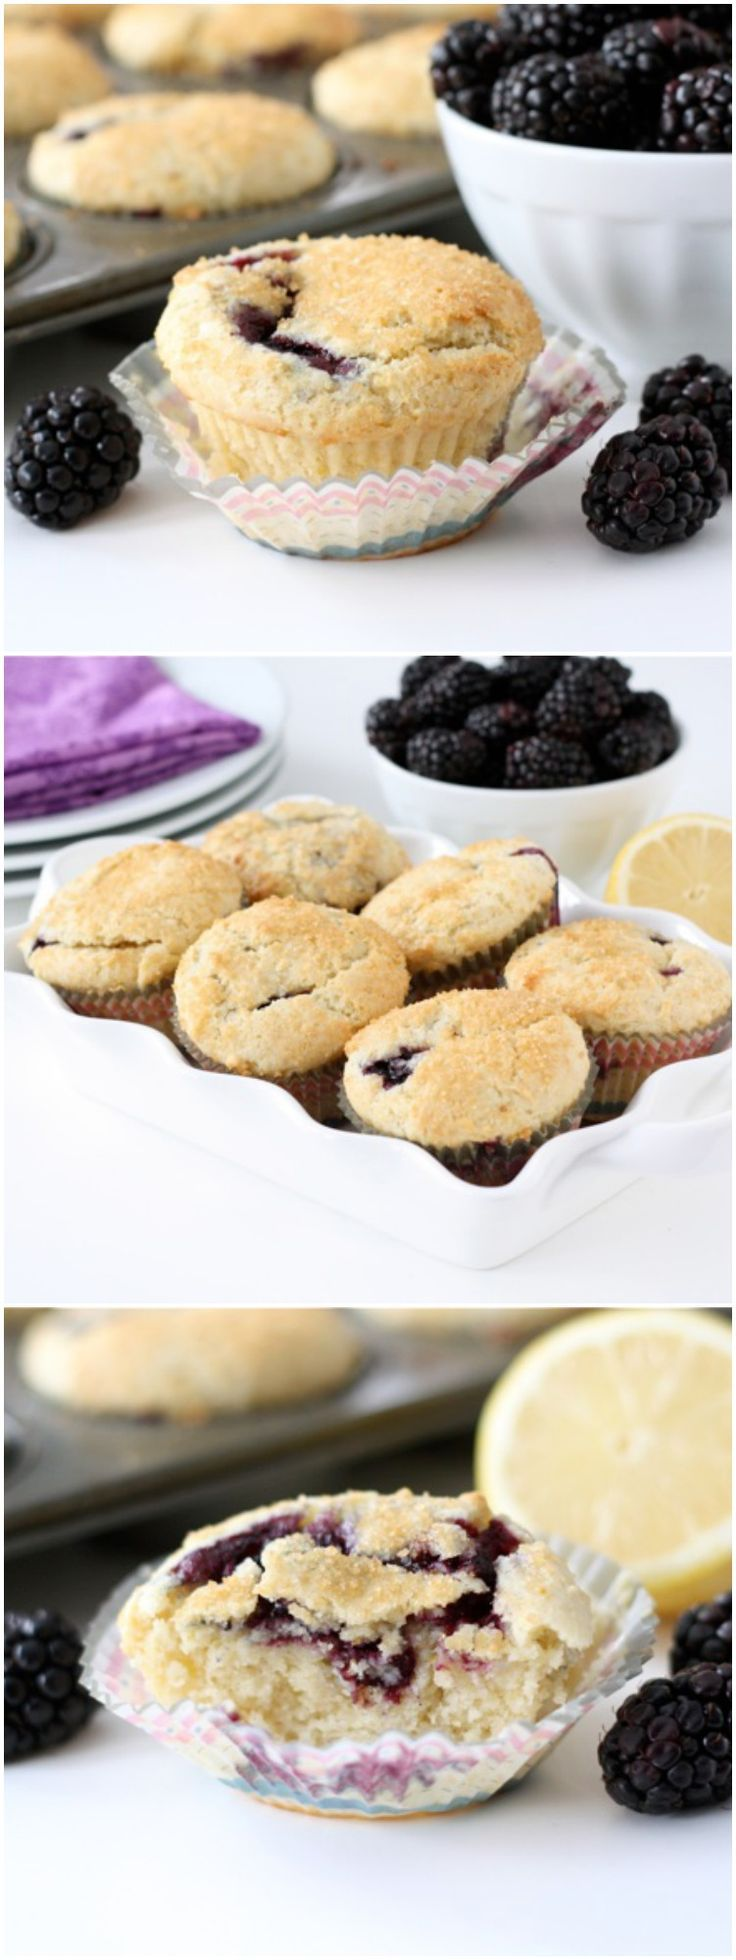 1000+ ideas about Blackberry Muffin on Pinterest ...